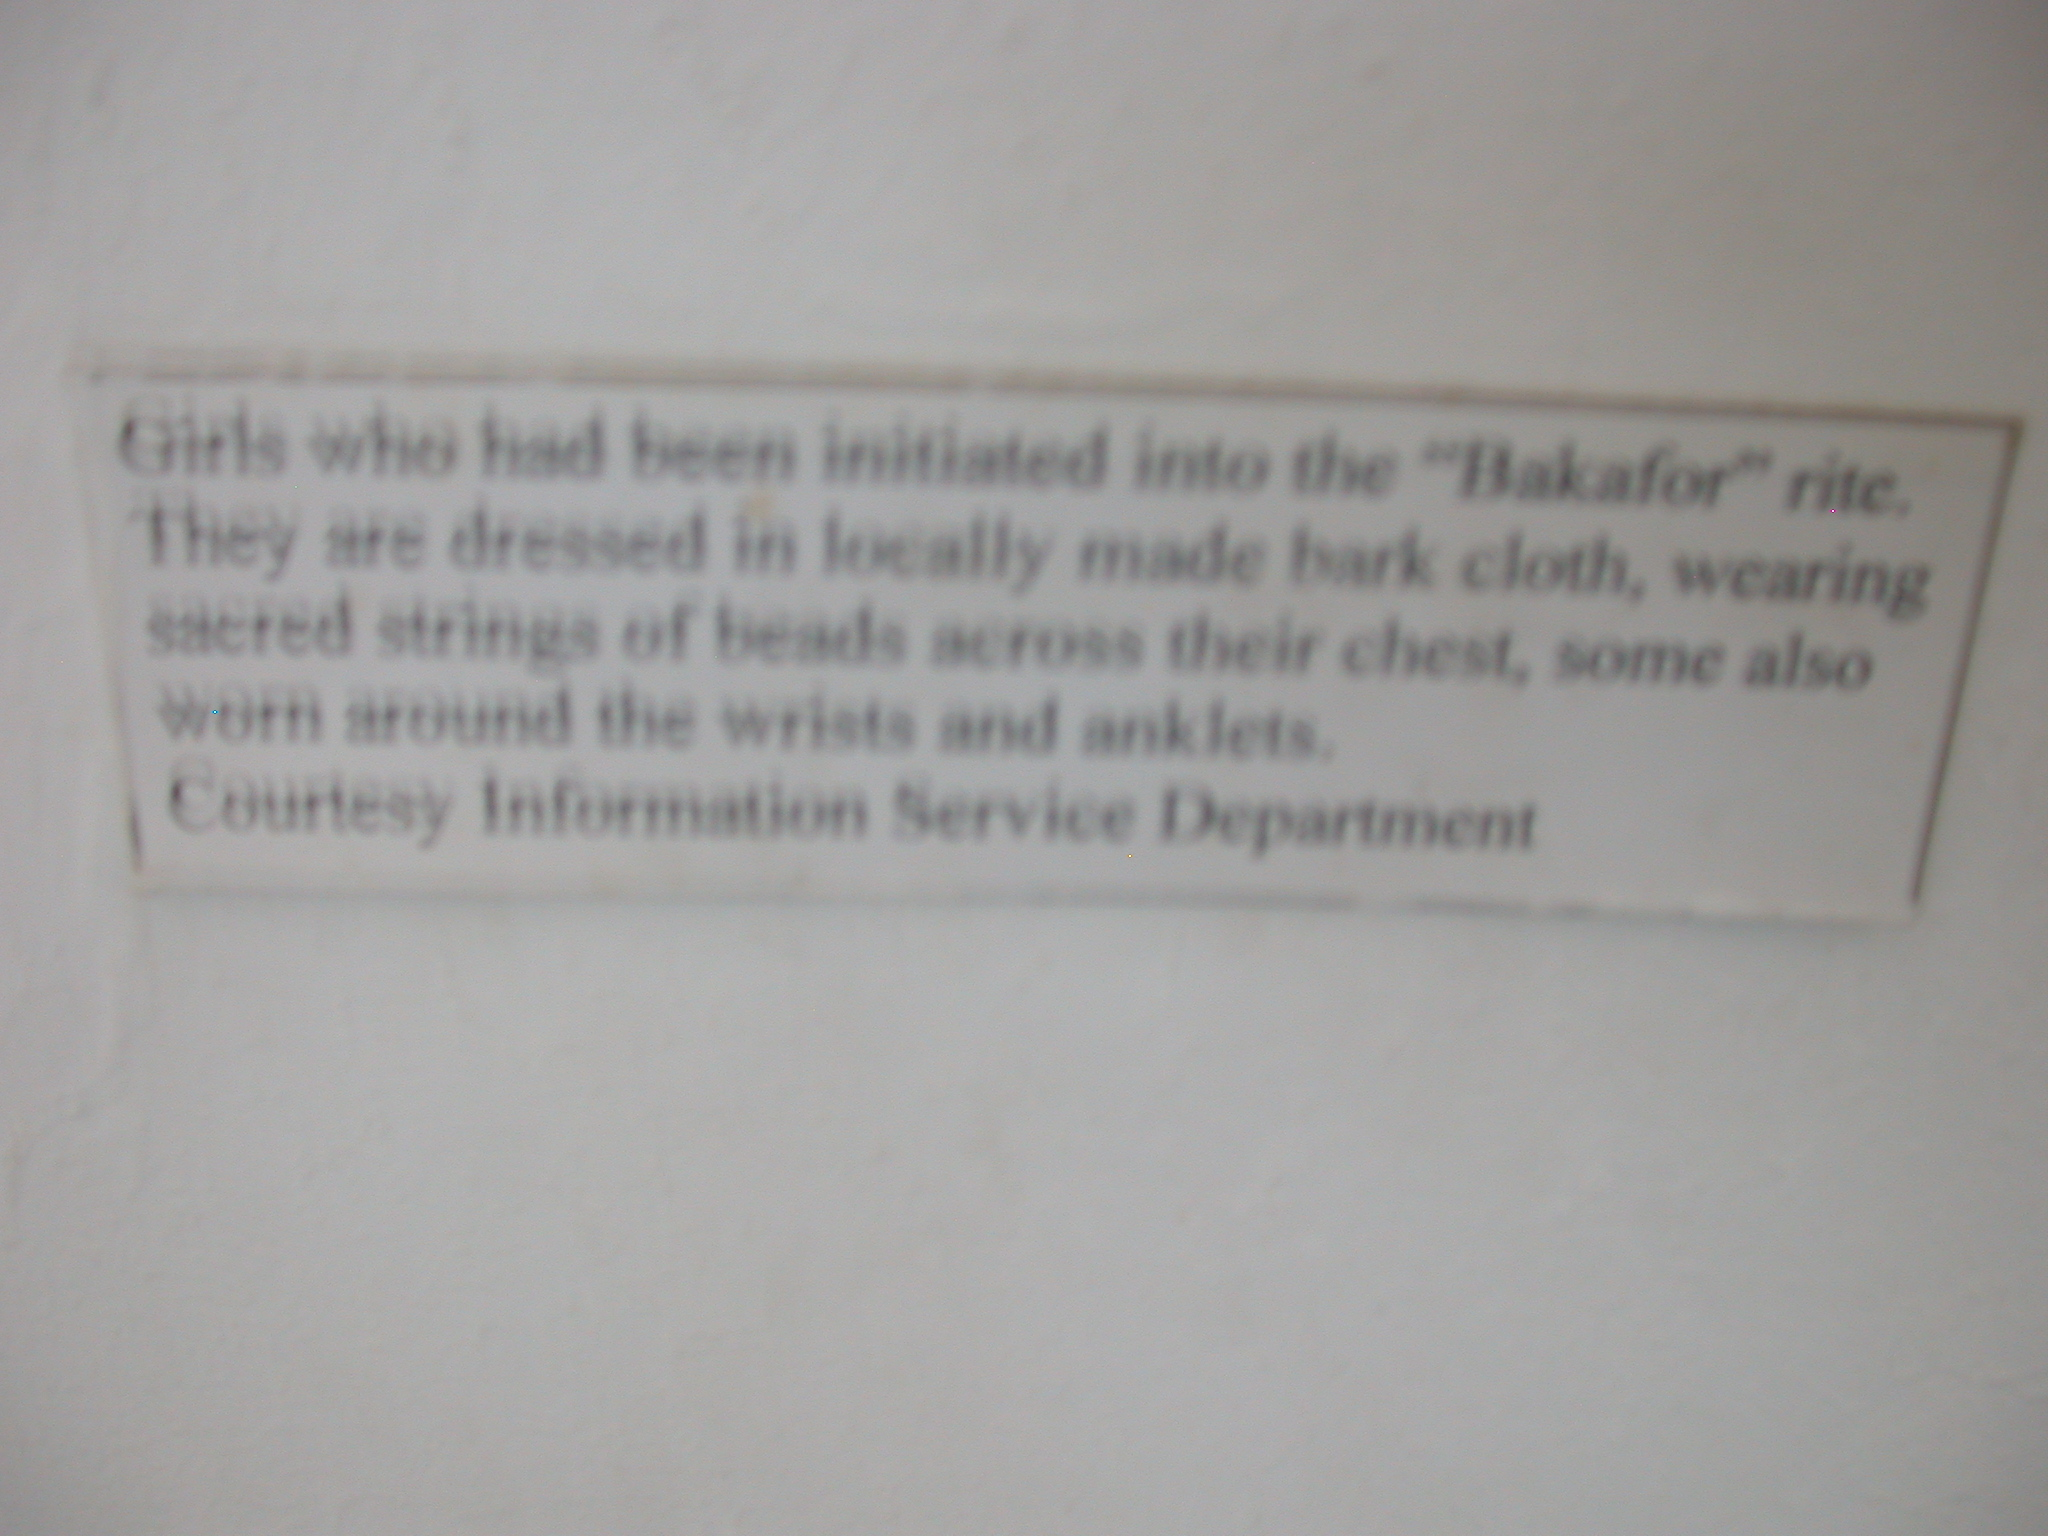 Label for Picture of Girls Initiated Into Bakafor Rite, National Museum, Accra, Ghana